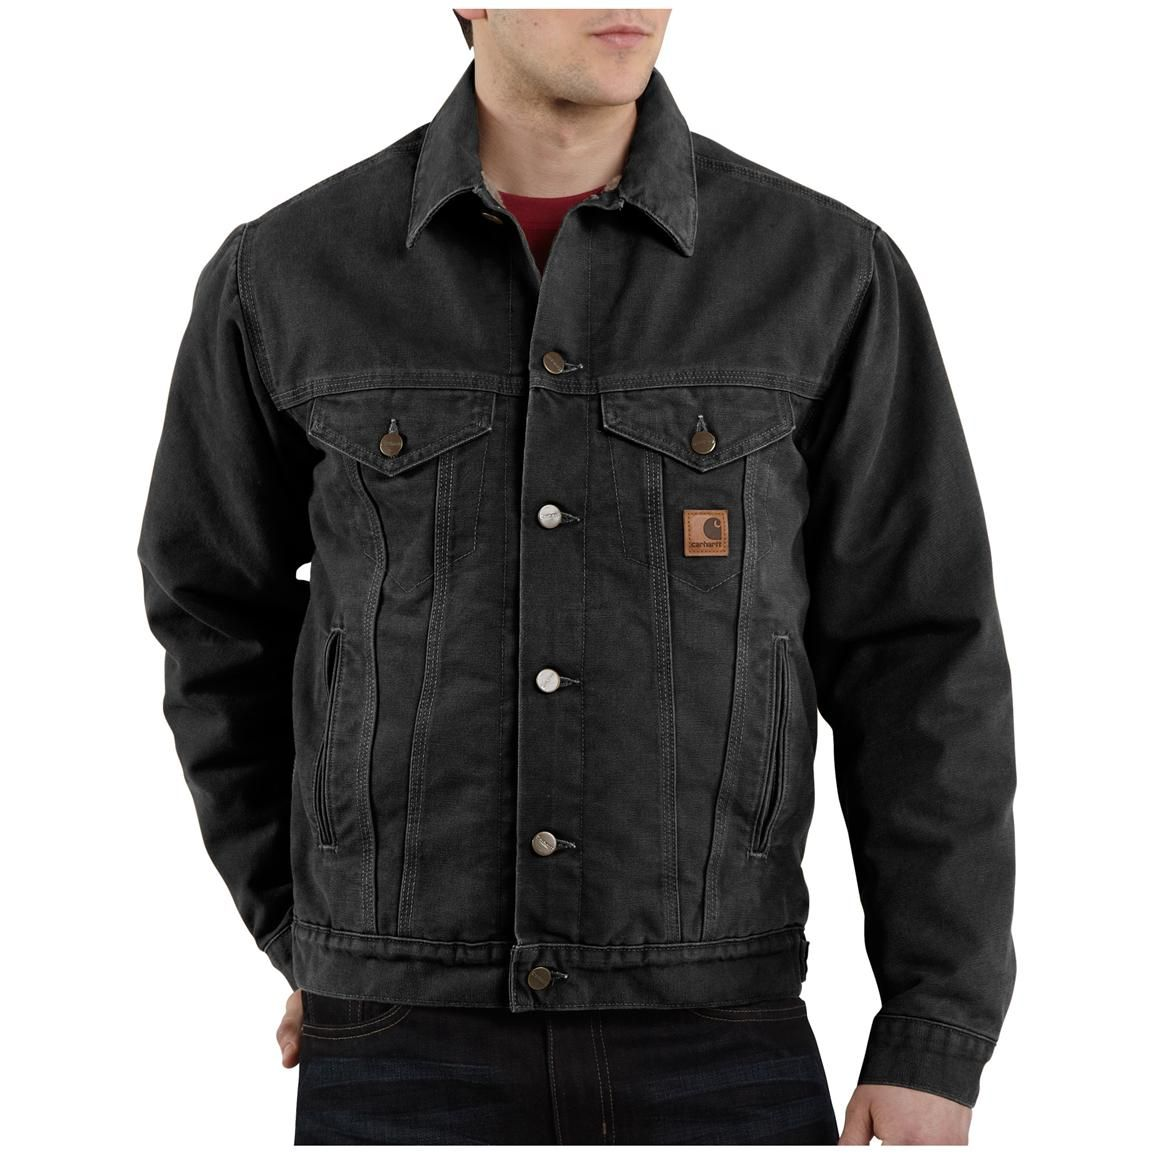 Men's Carhartt® Sandstone Jean Jacket | Jackets, Products and Workwear